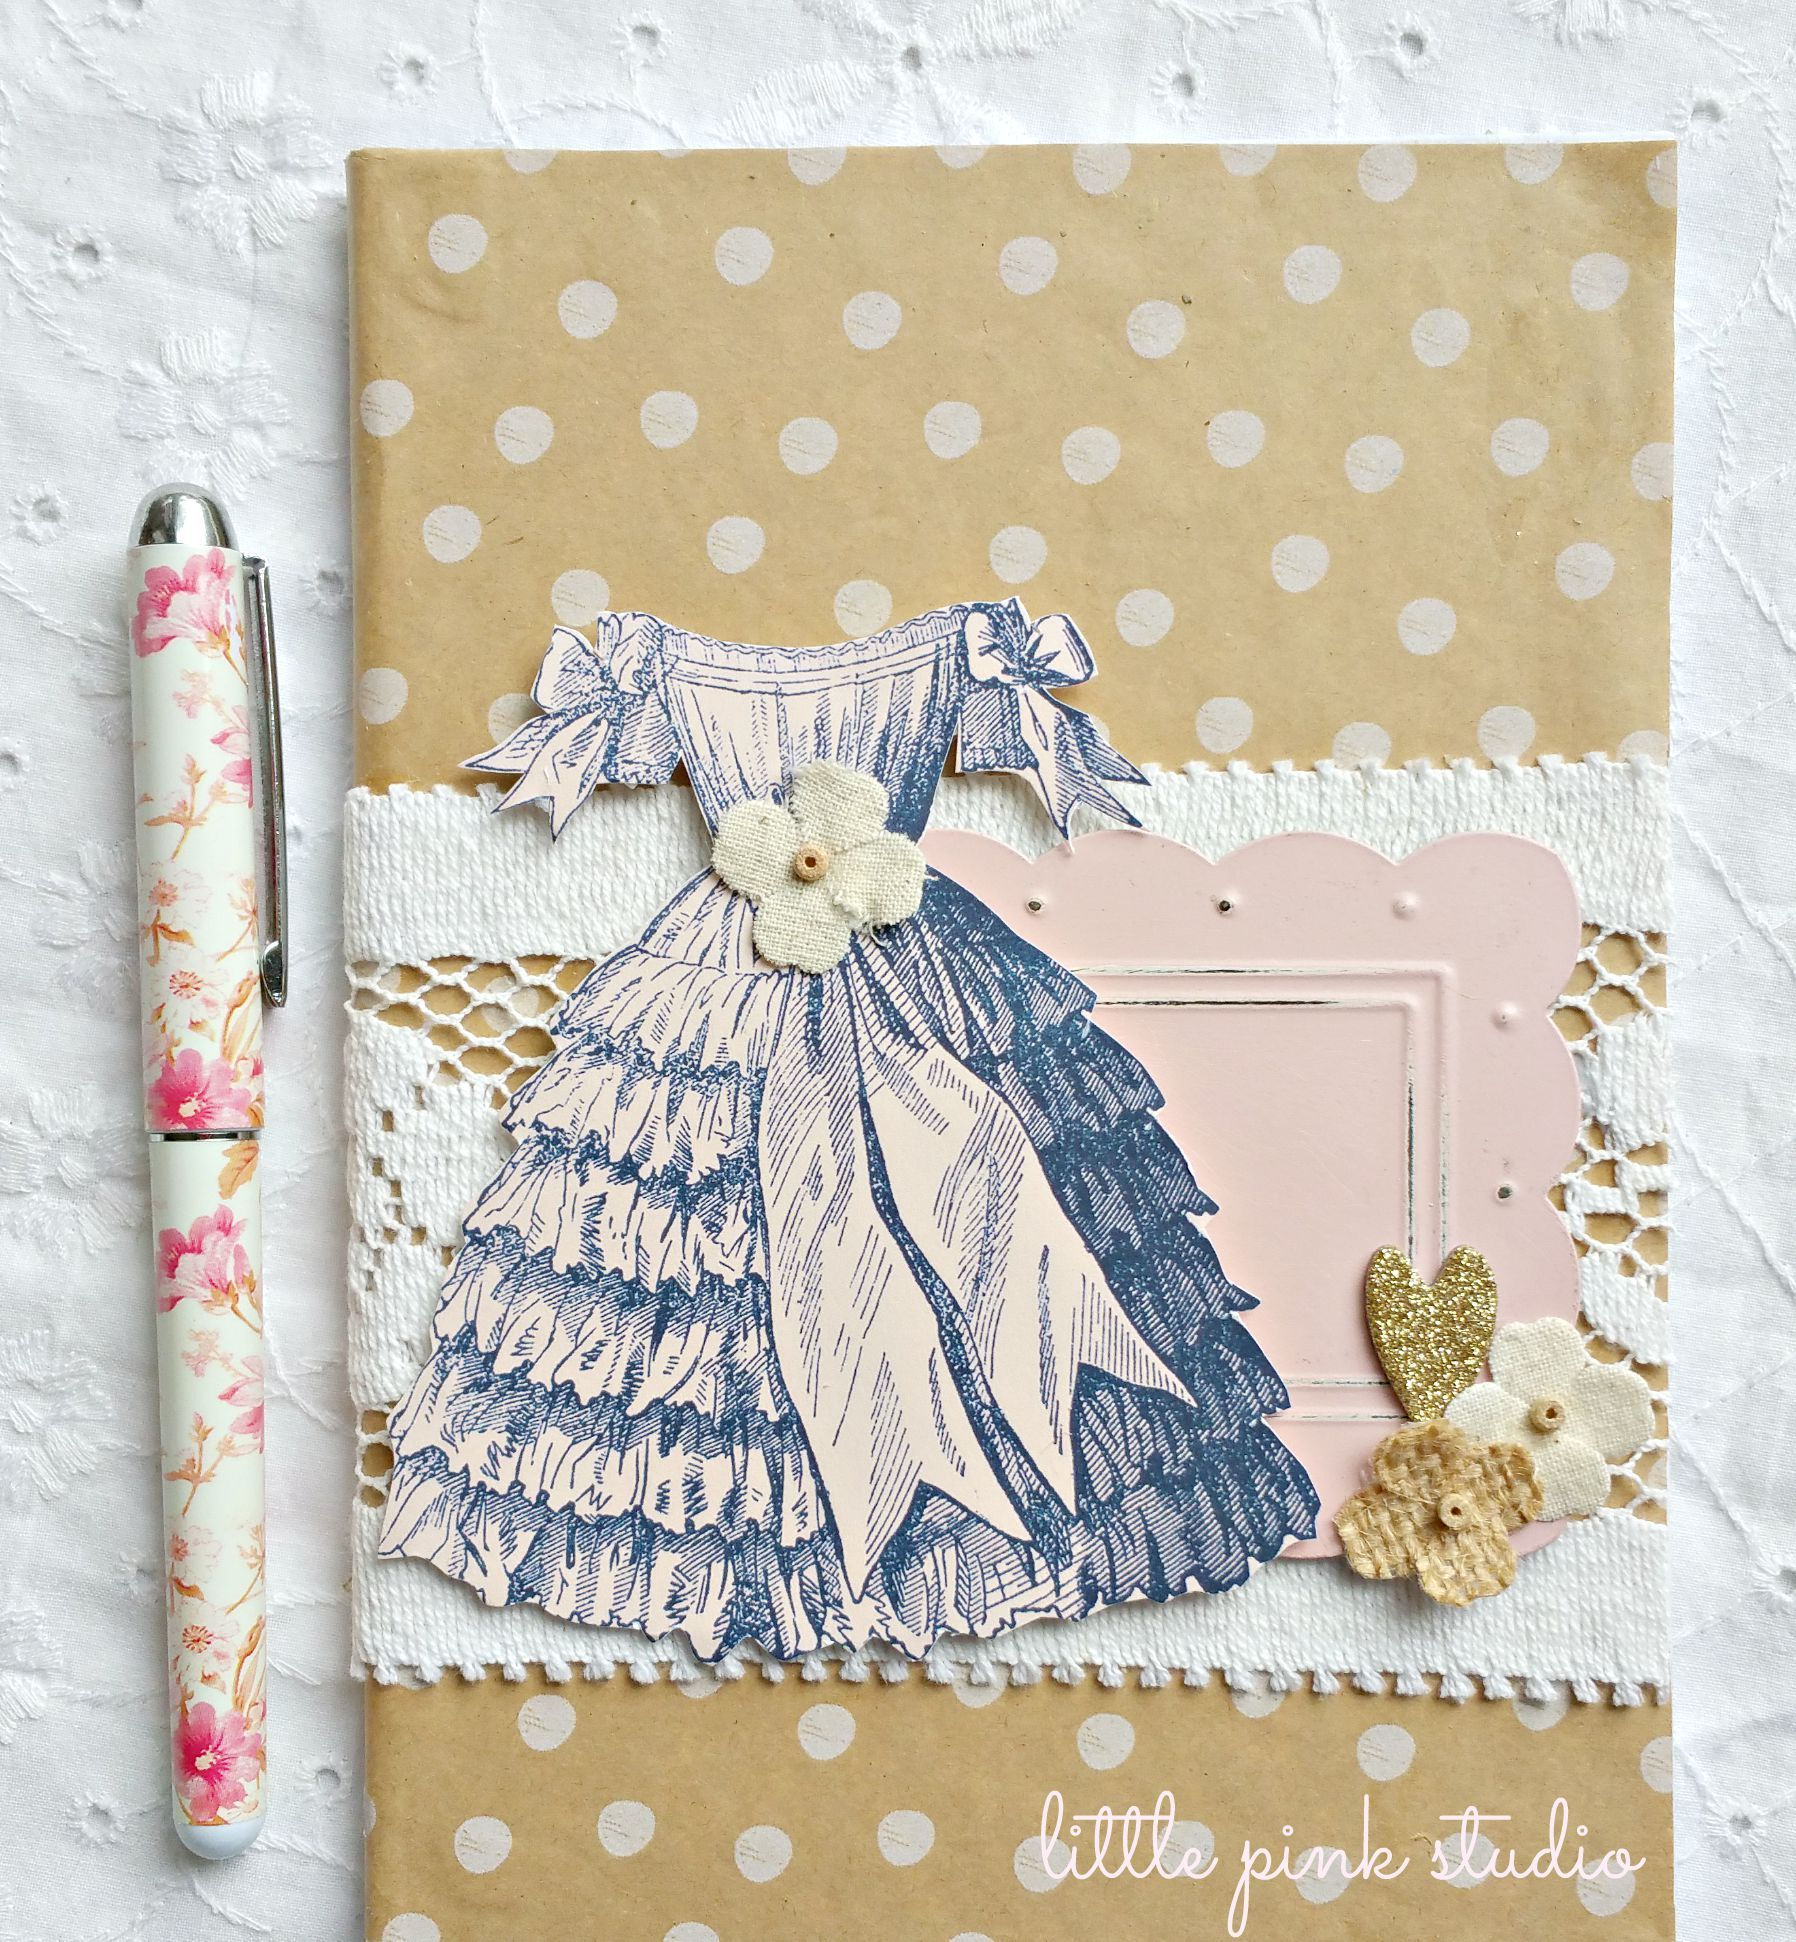 Sweet little journal. One of the creative projects from the August Little Pink Box craft subscription.